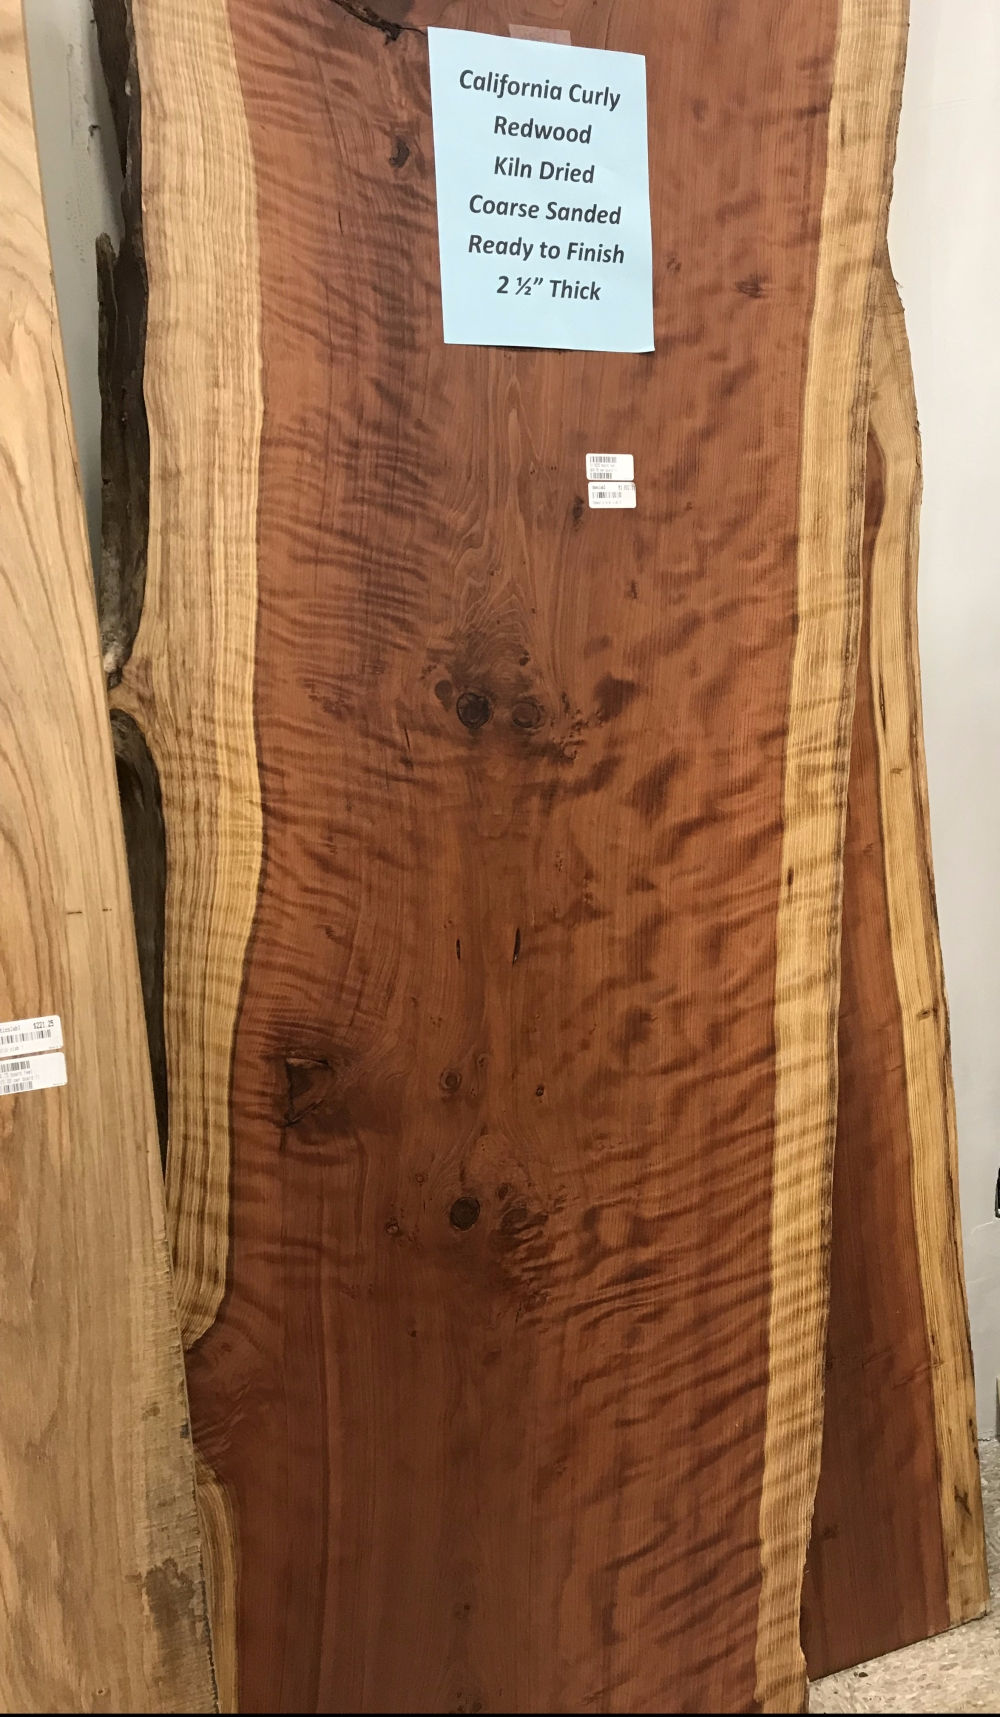 California Curly Redwood